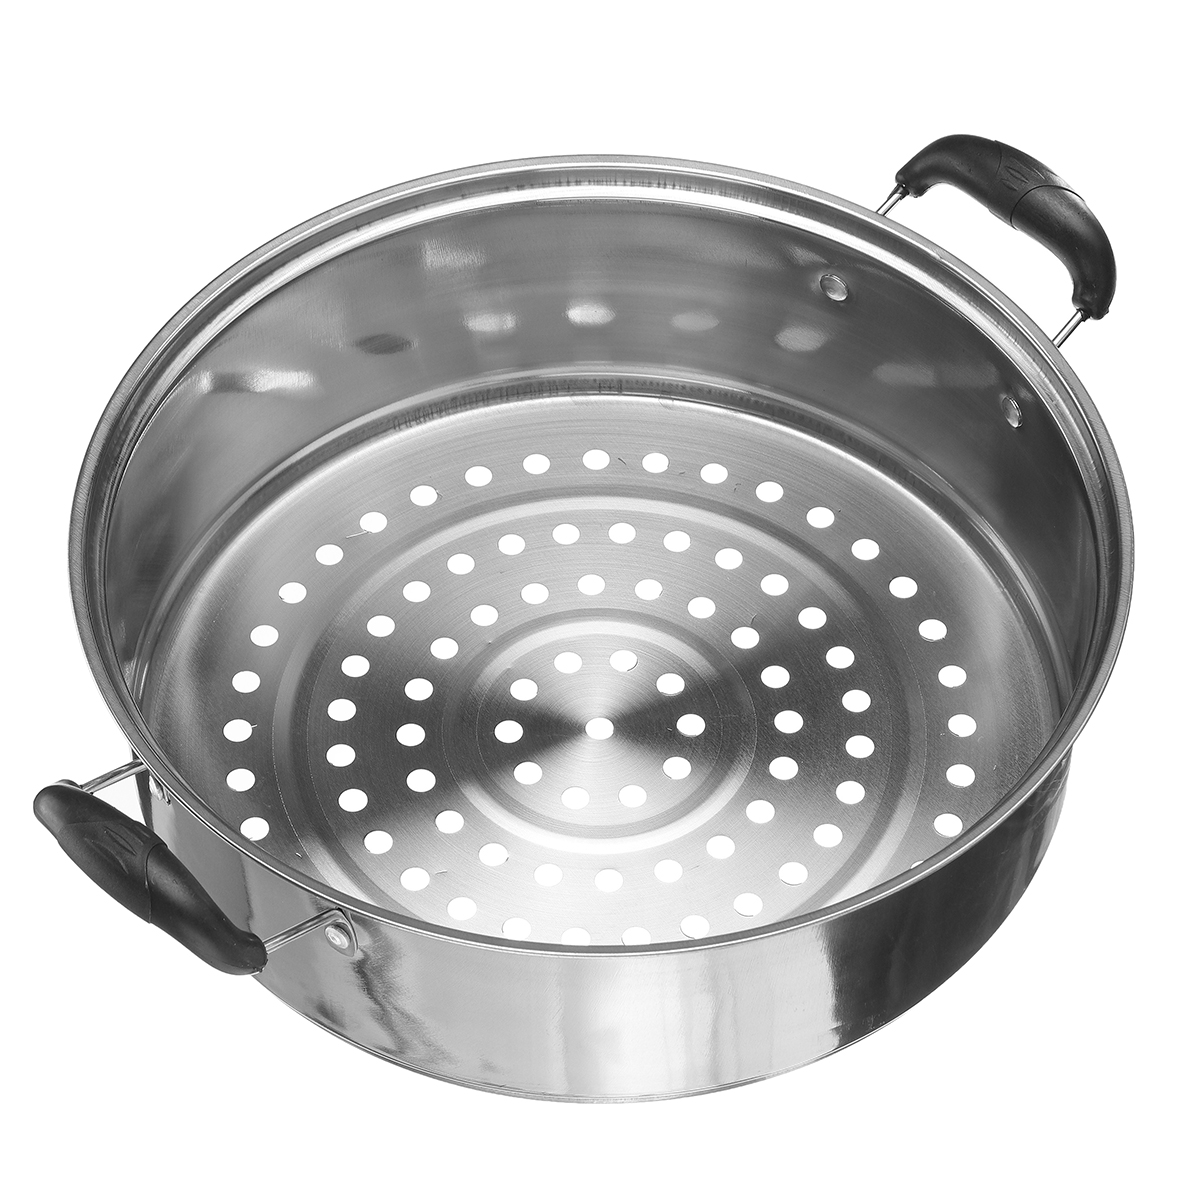 3 Tier Stainless Steel Pot Steamer Steam Cooking Cooker Cookware Hot Pot Kitchen Cooking Tools